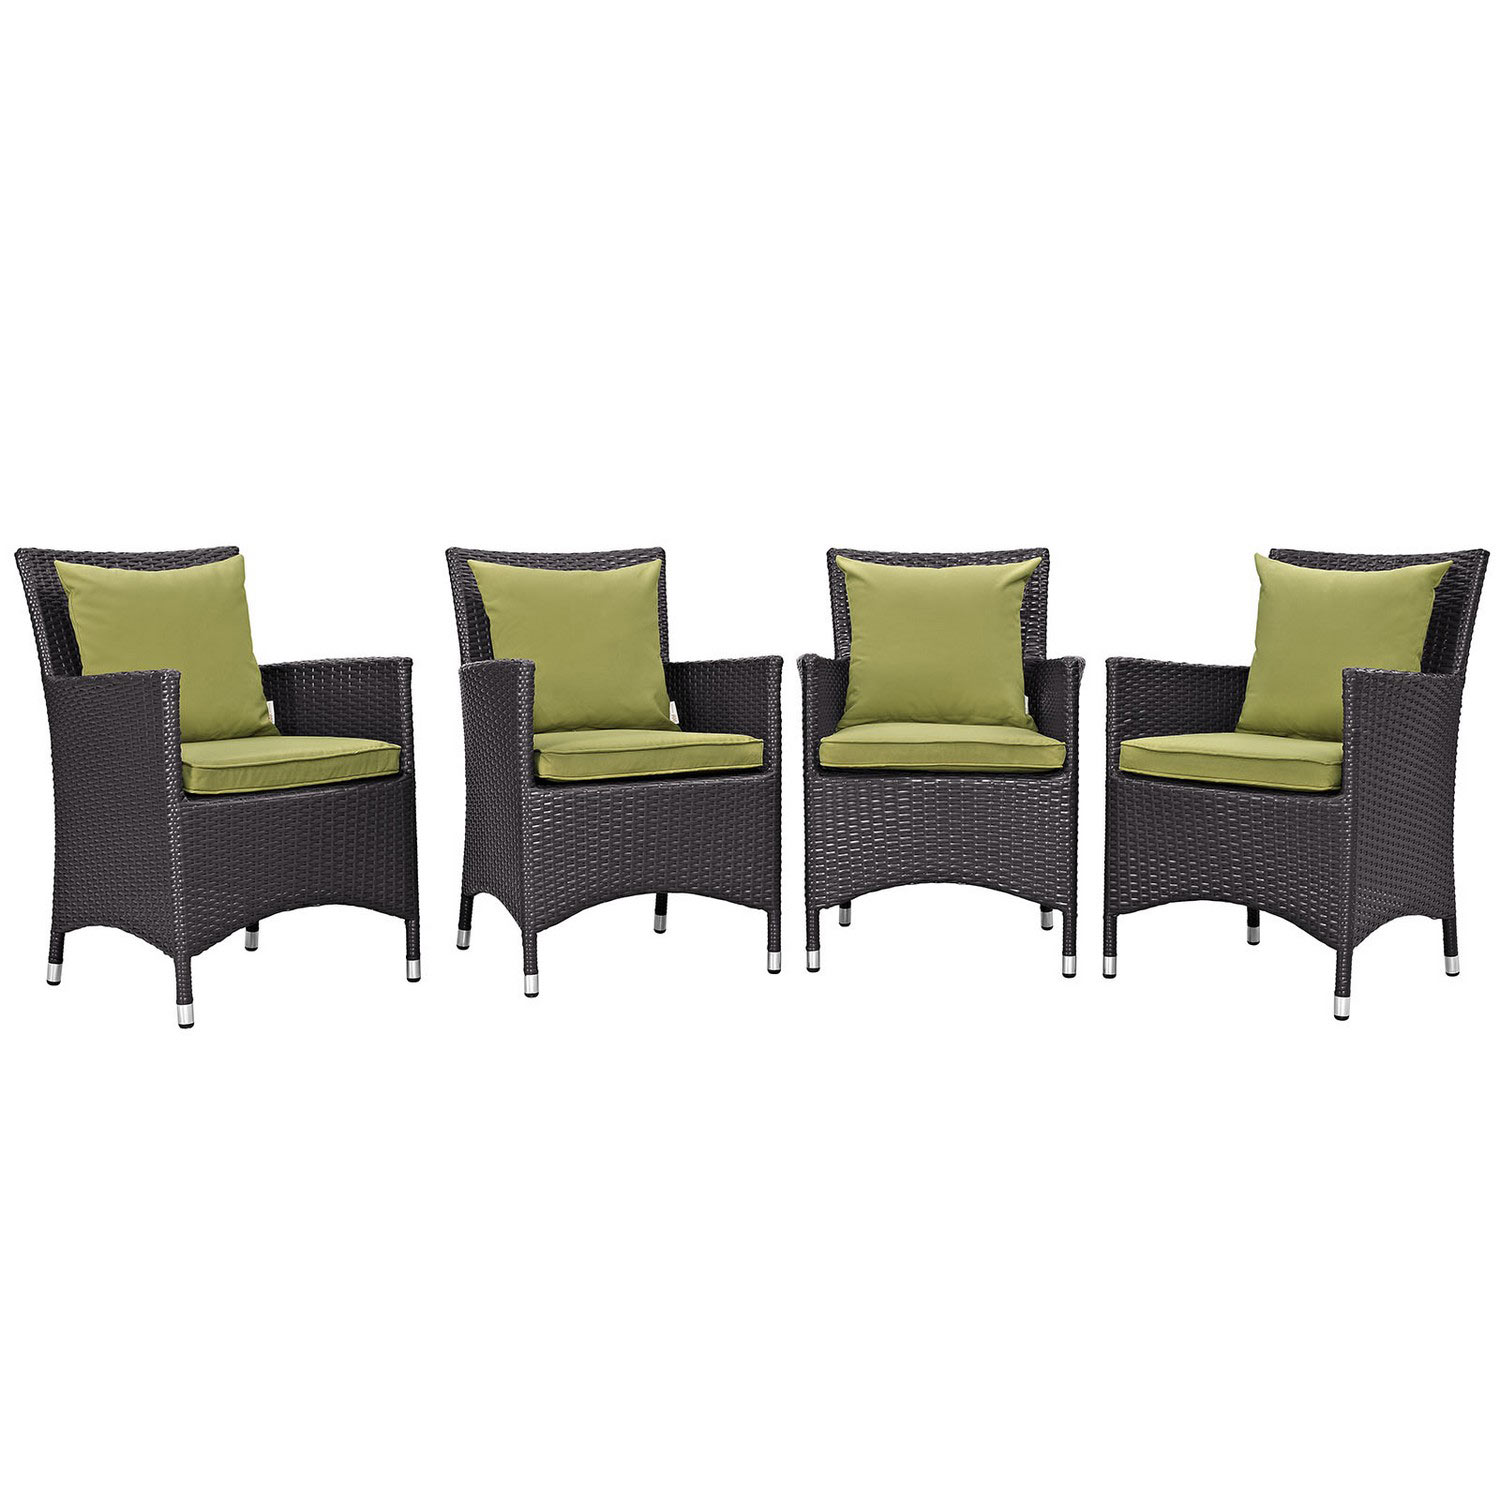 Modway Convene 4 Piece Outdoor Patio Dining Set - Espresso Peridot